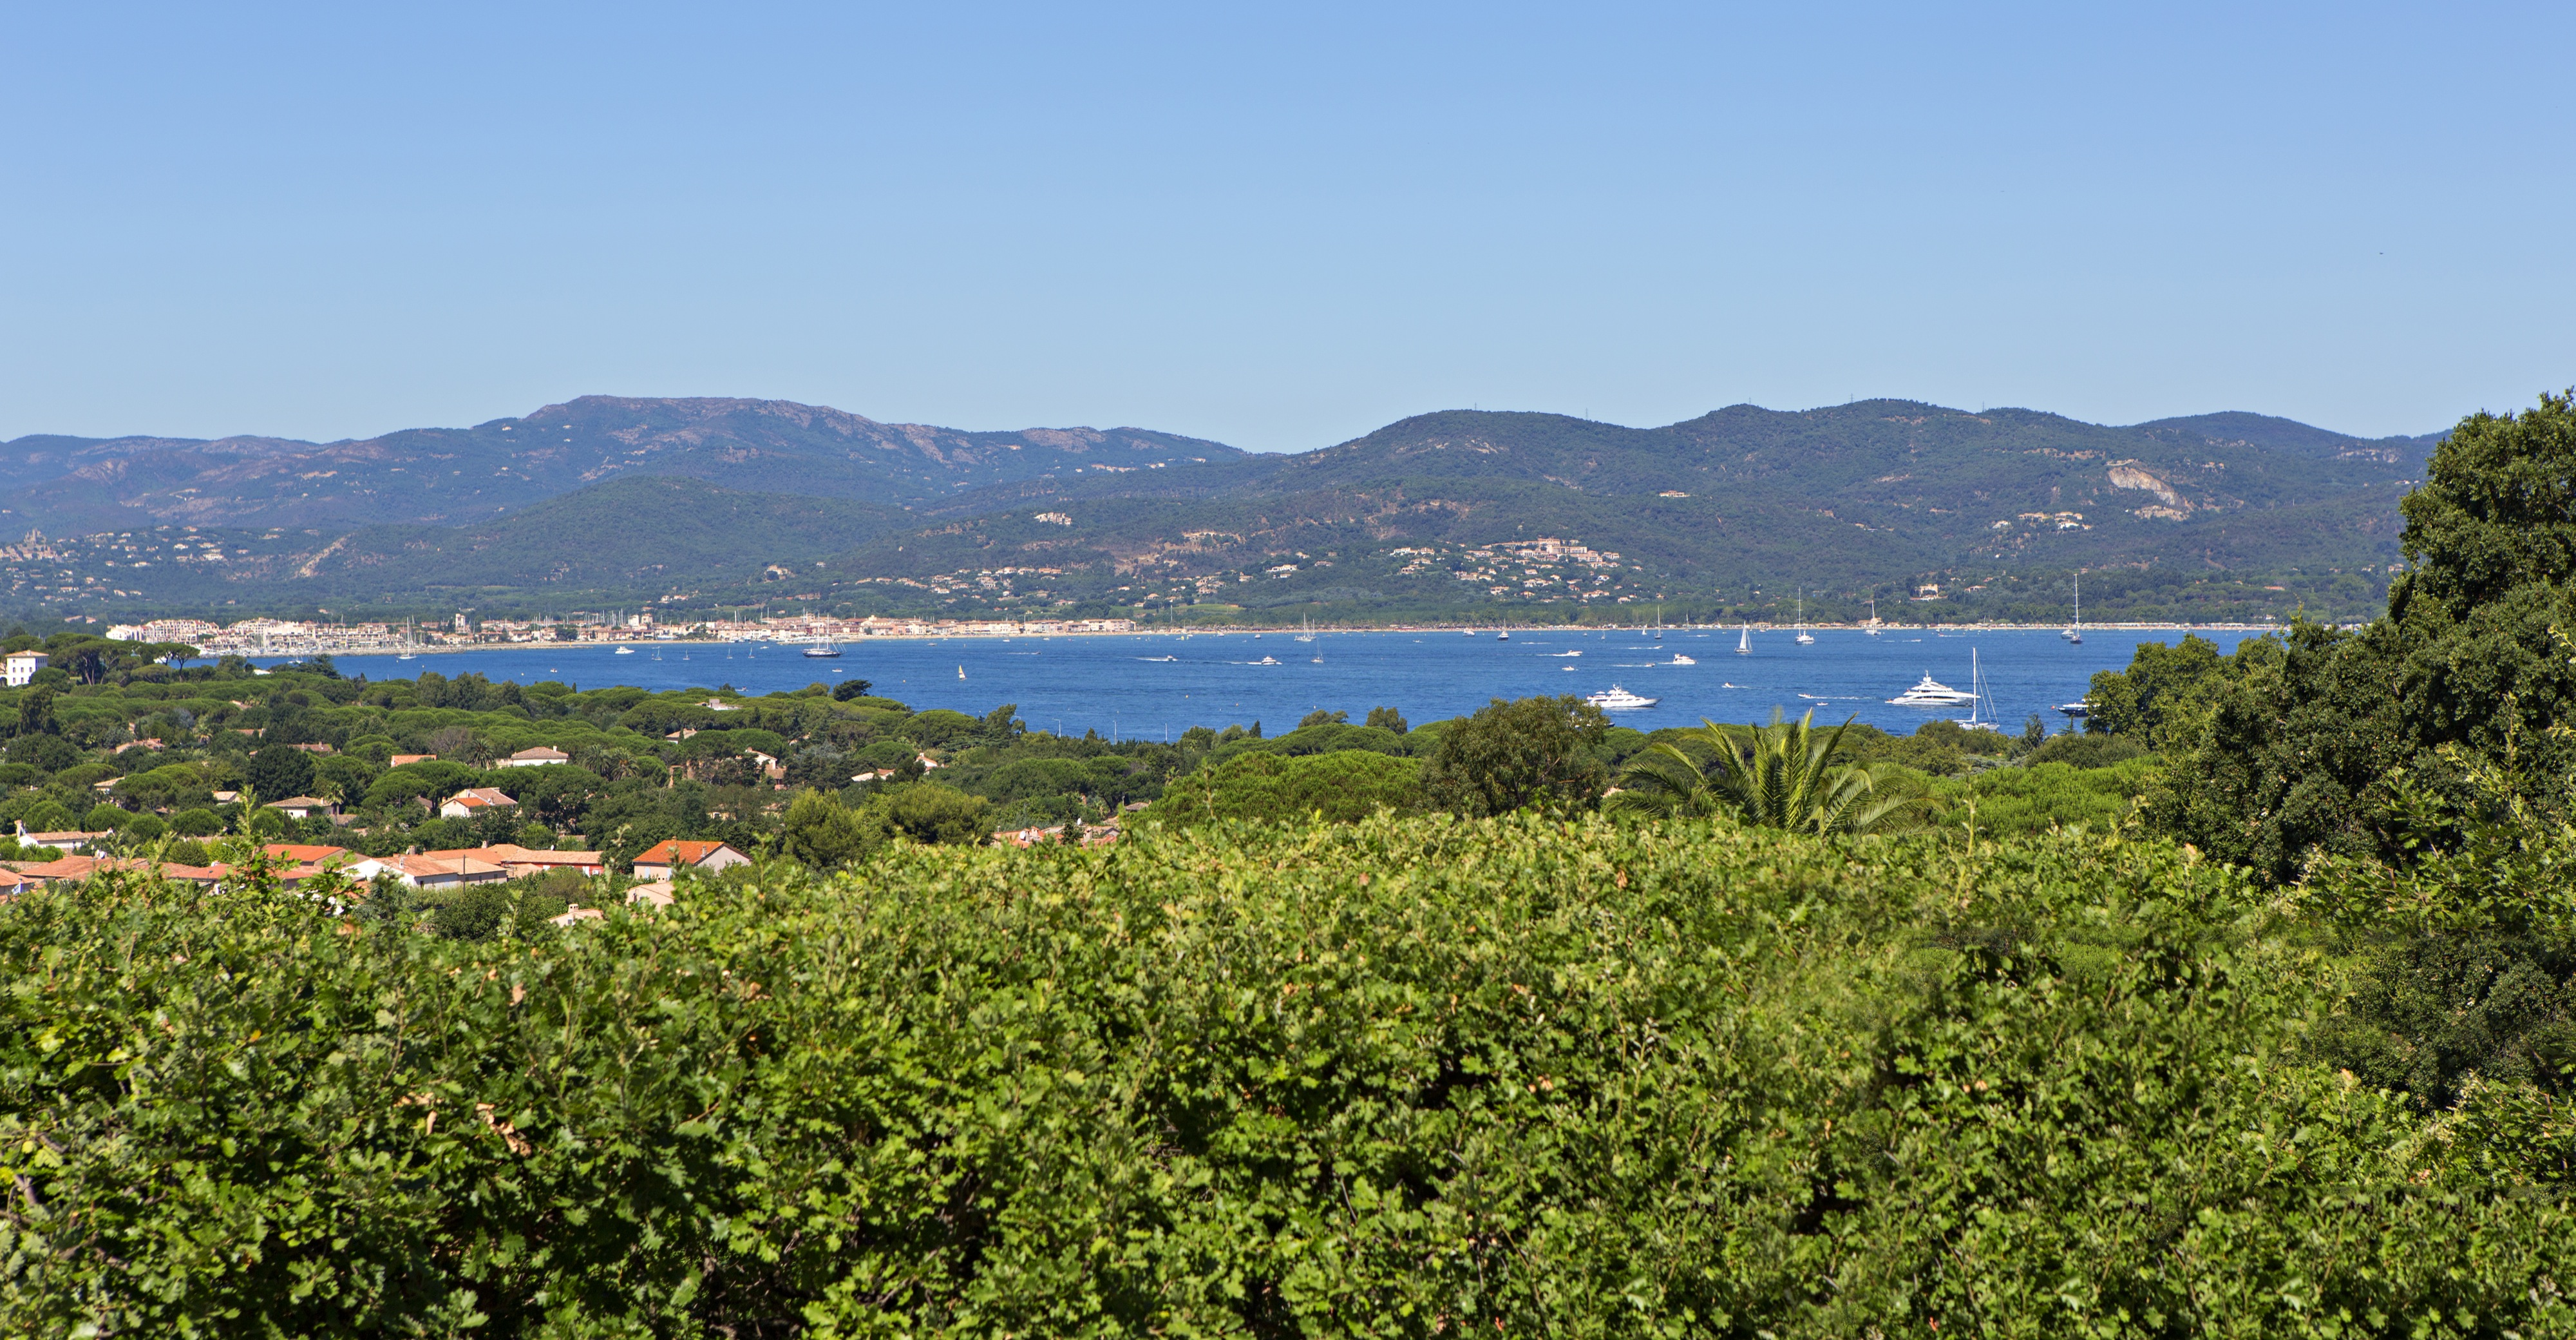 Sea views and trees taken from a property in Les Carles Saint Tropez